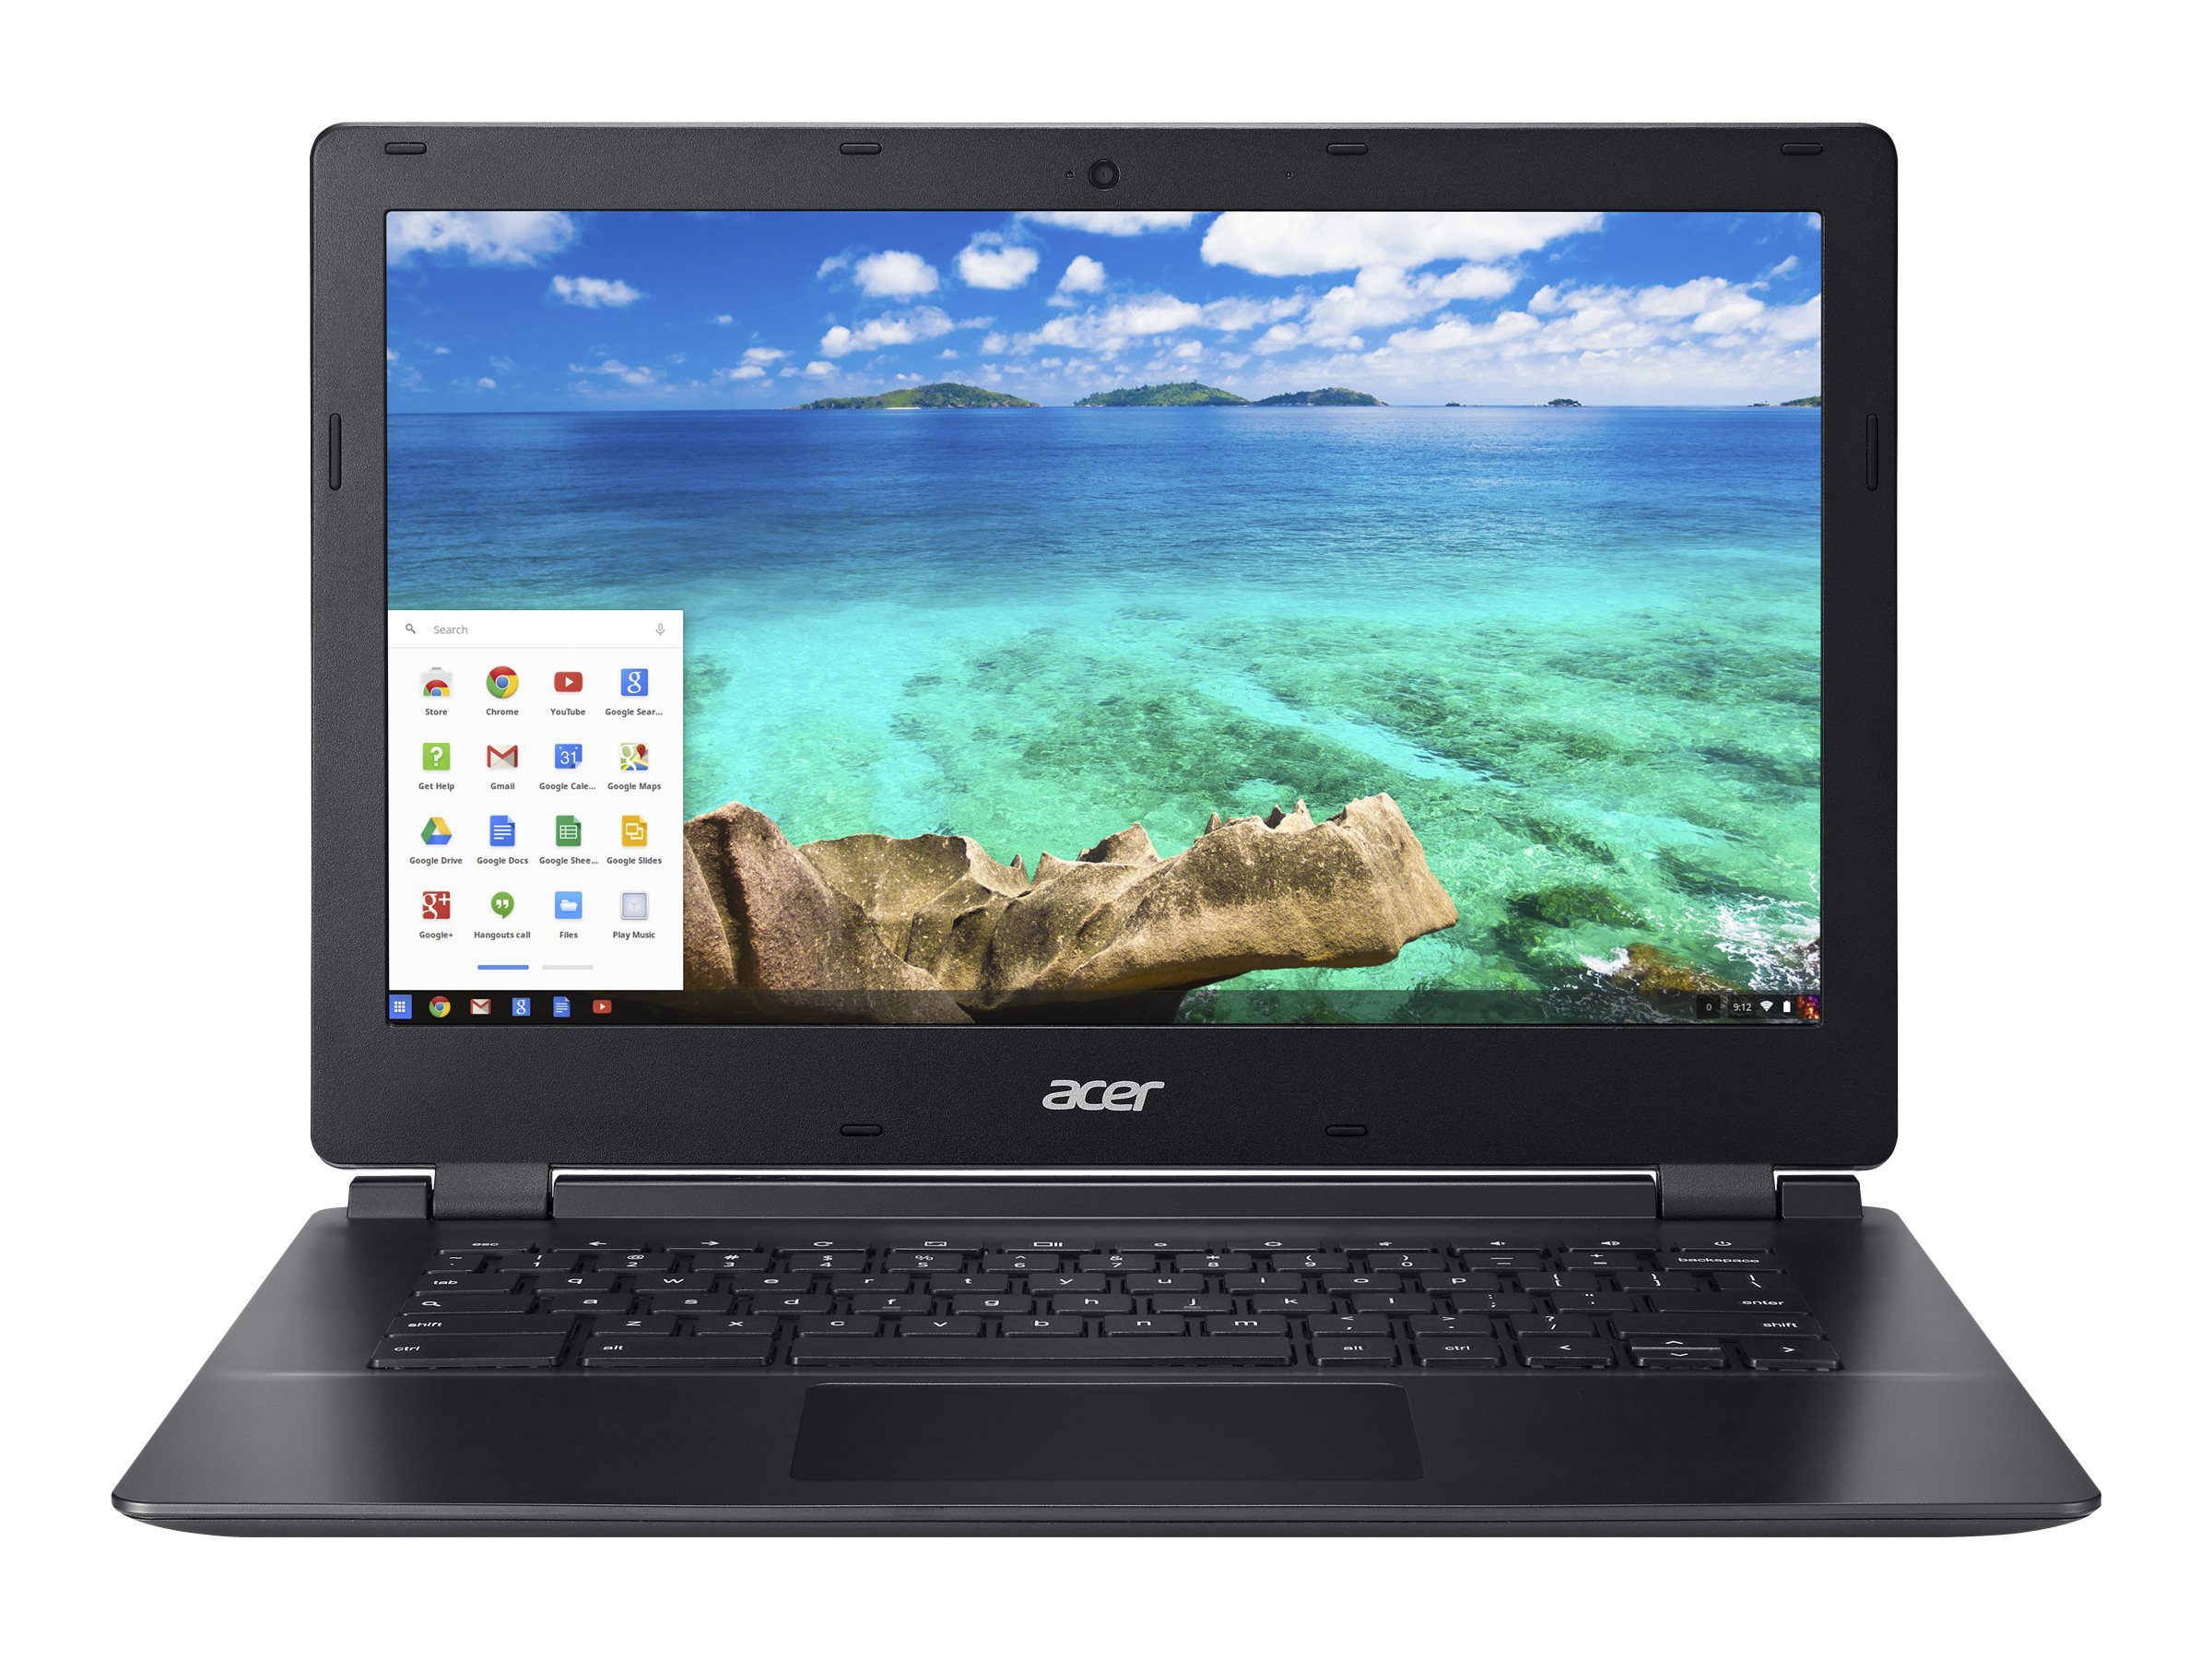 Acer NX.G14AA.003 Image 2